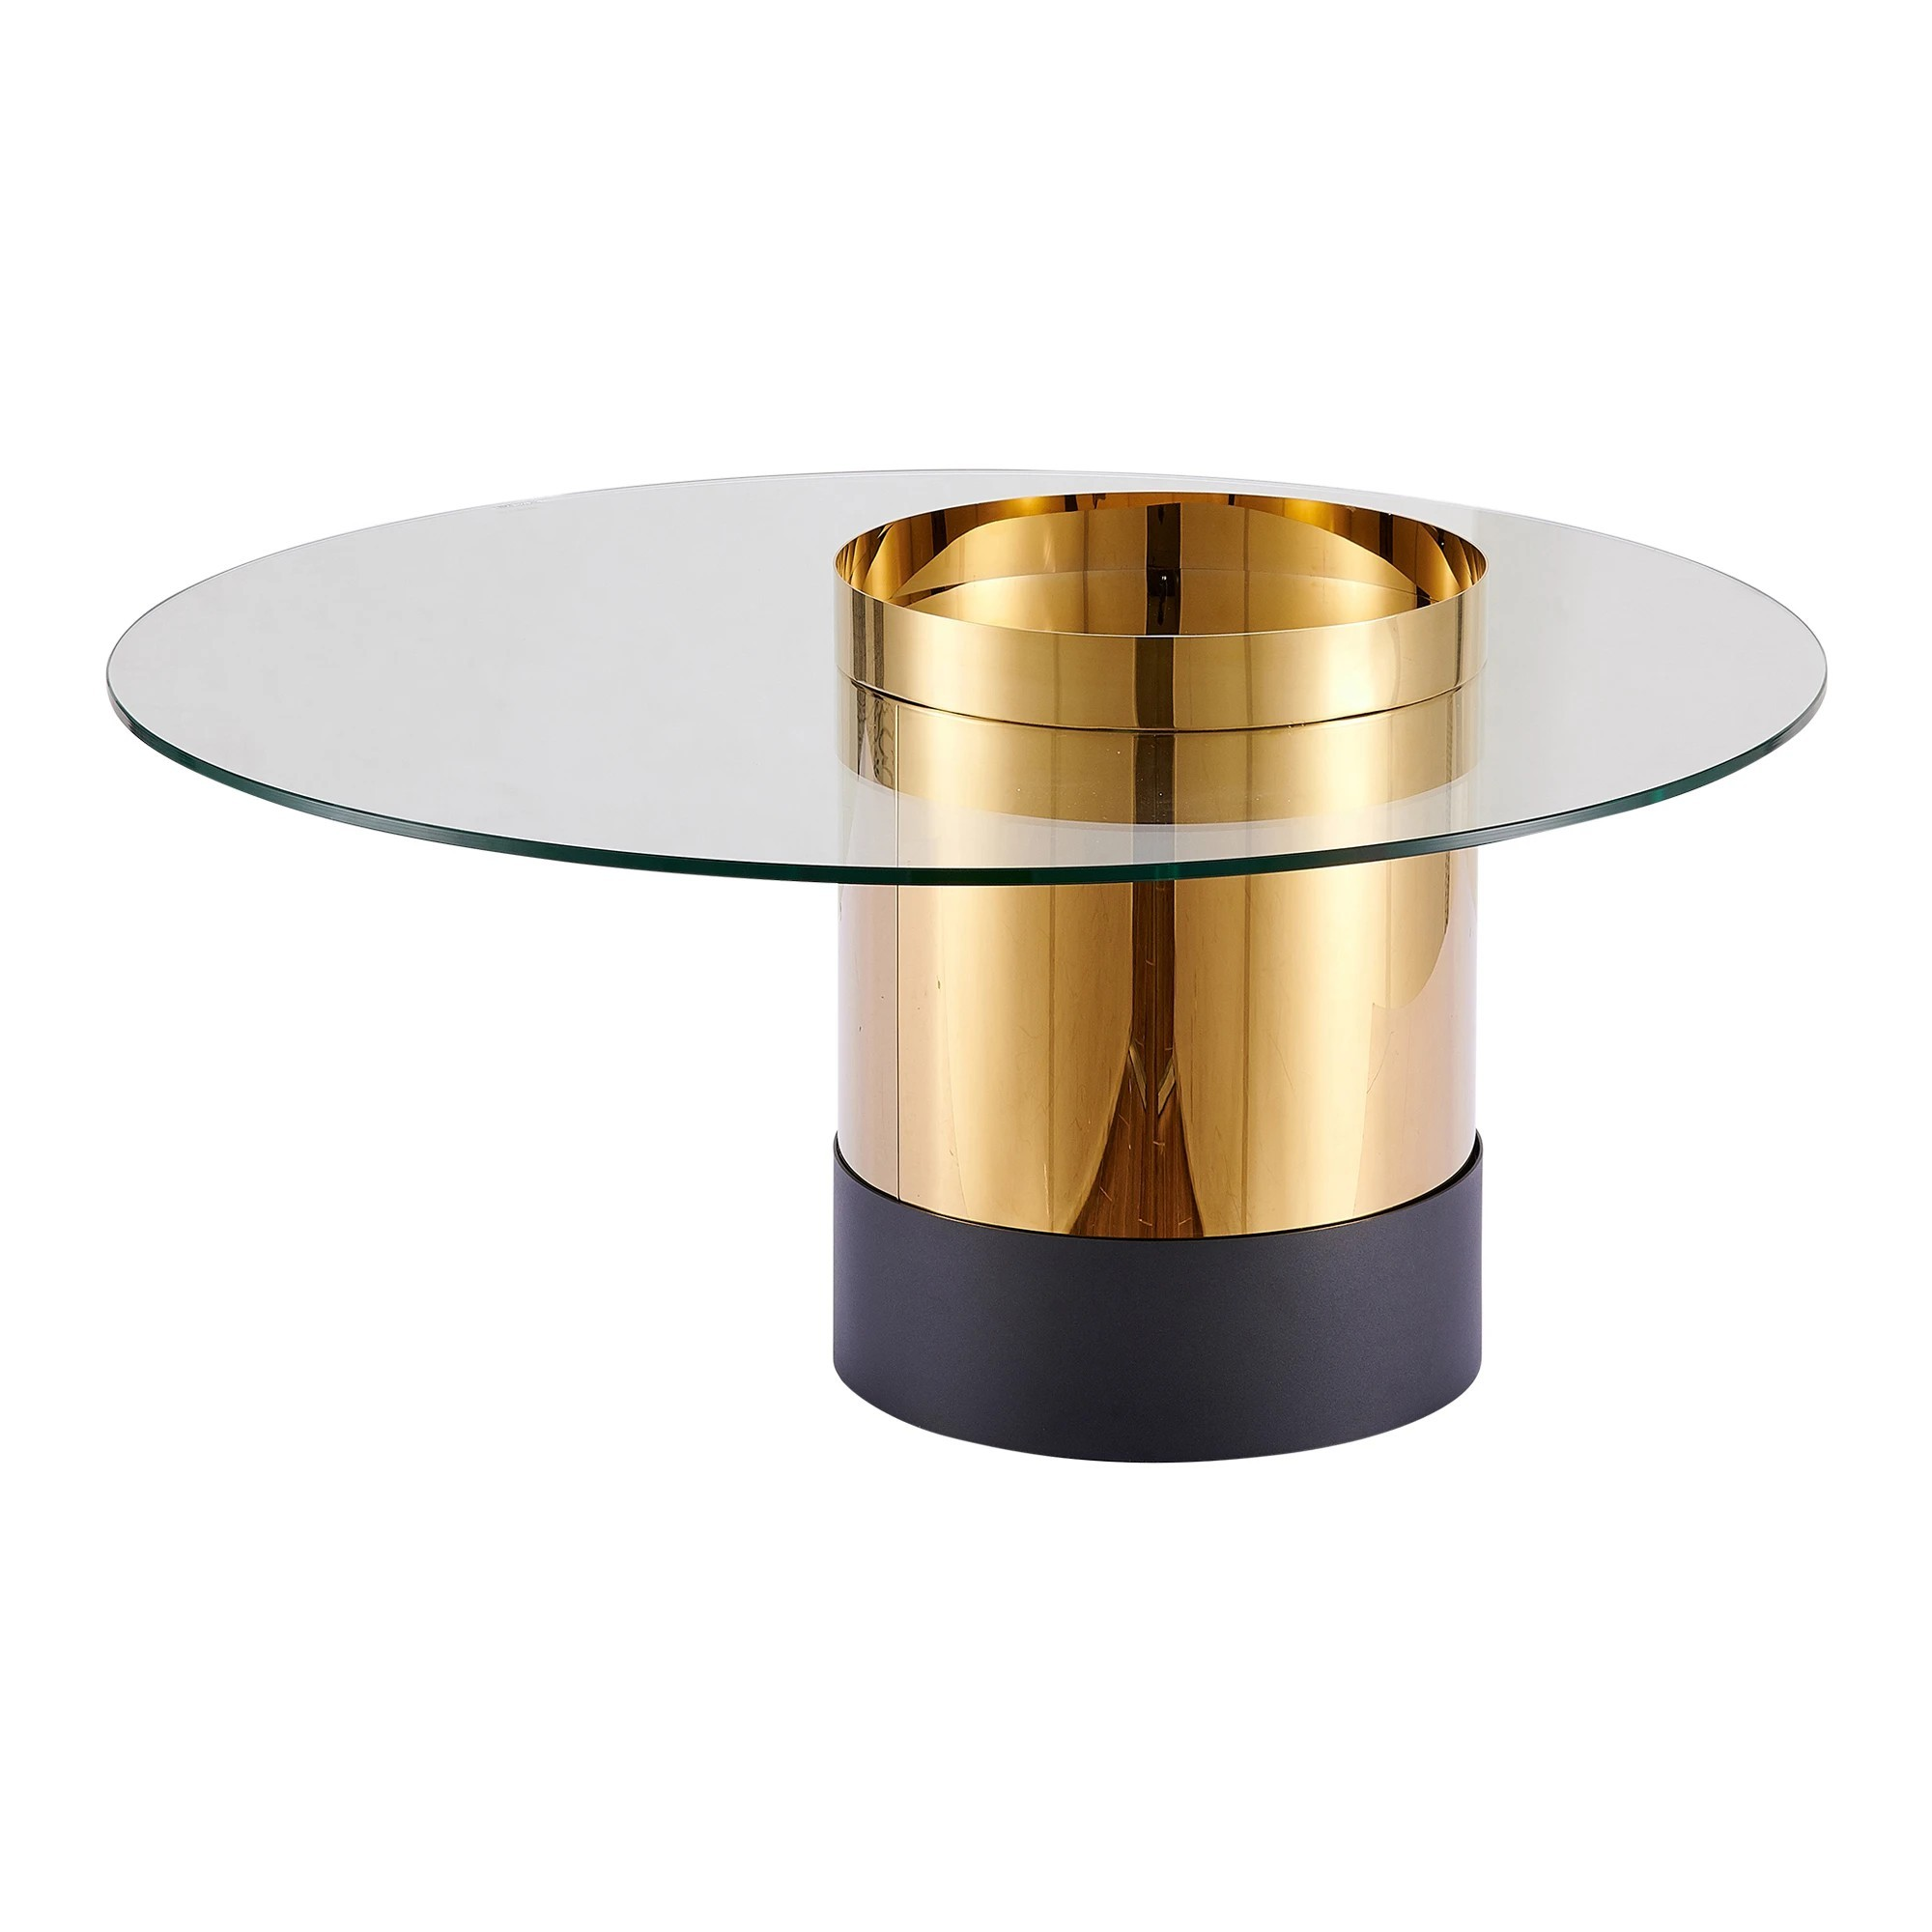 Zona Glass & Metal Round Coffee Table, 100cm